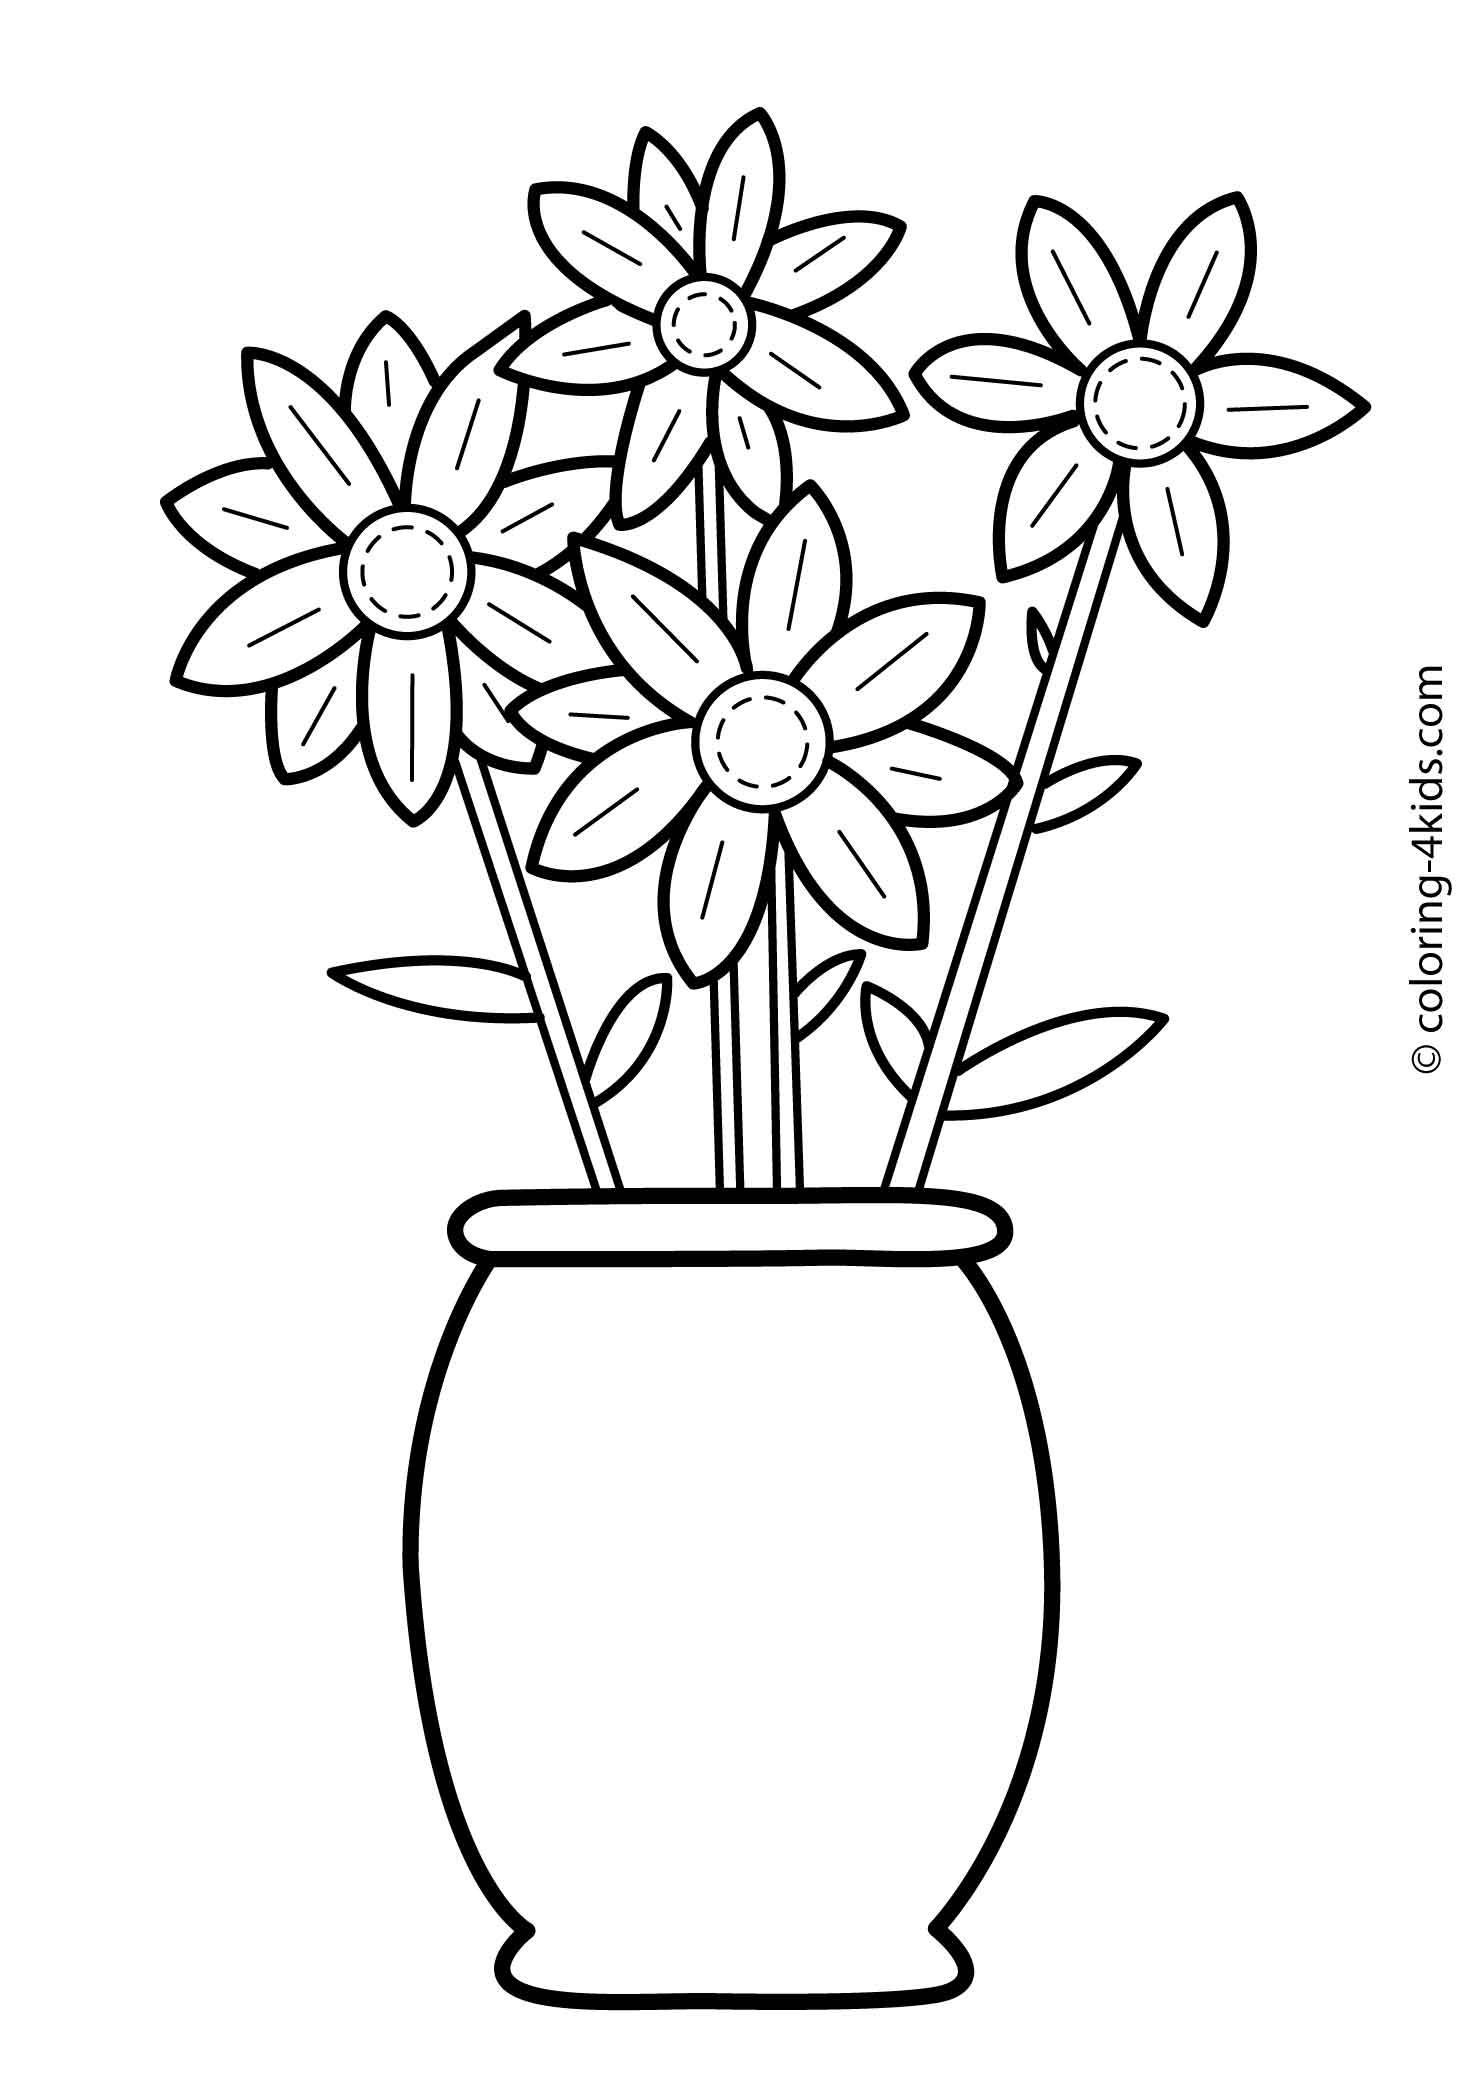 flower coloring pages kids - photo#34